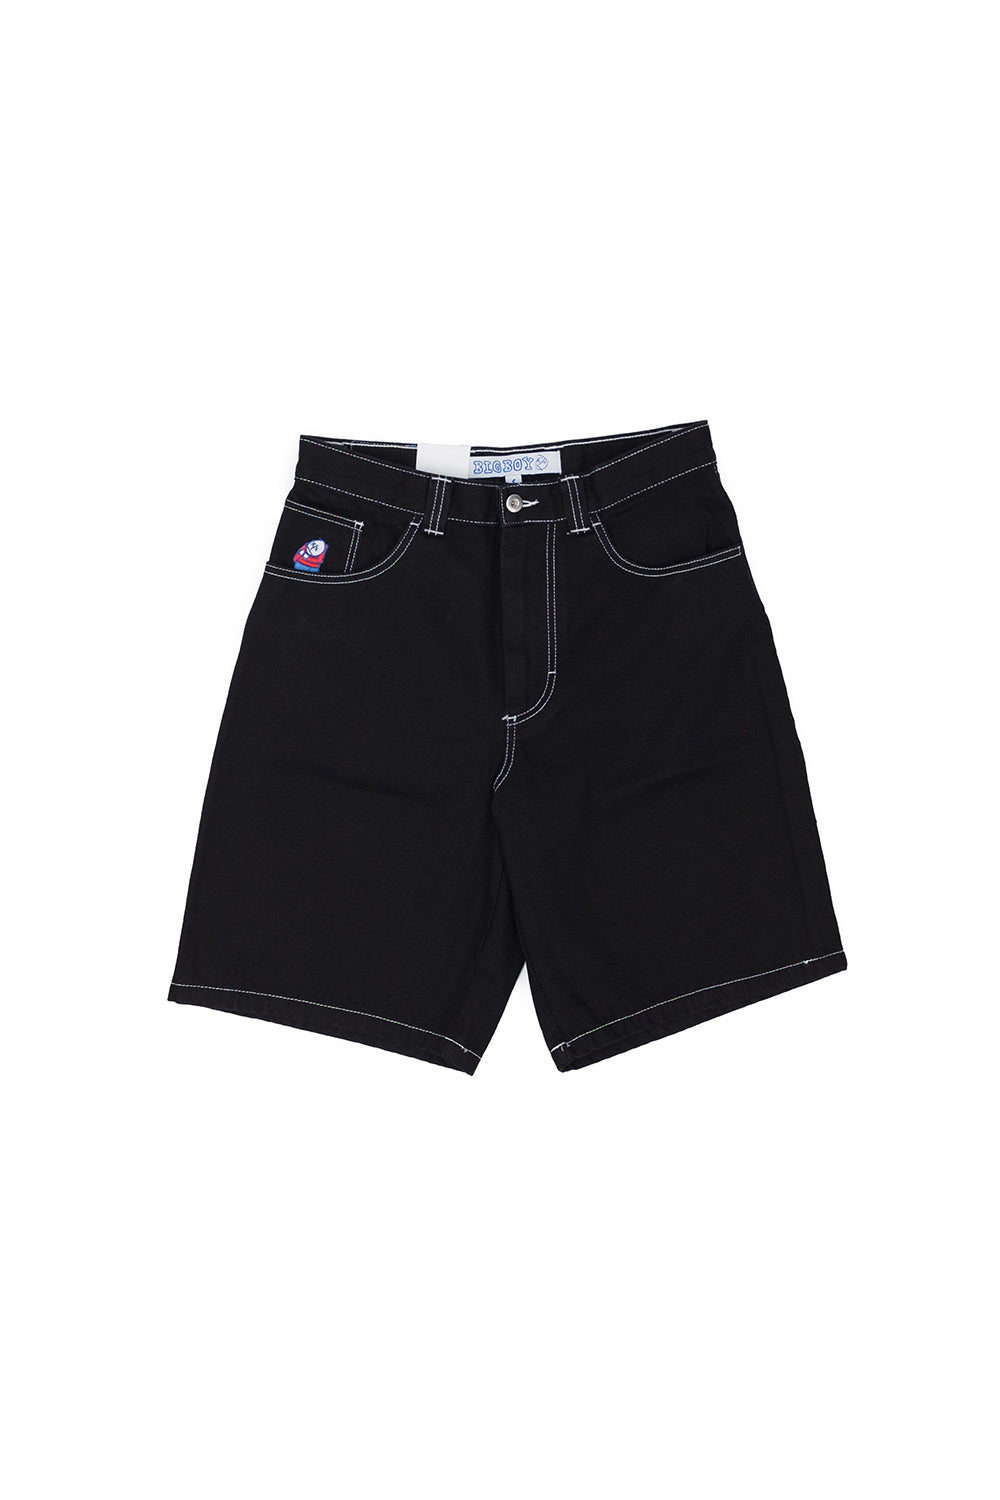 Polar Skate Co Big Boy Shorts